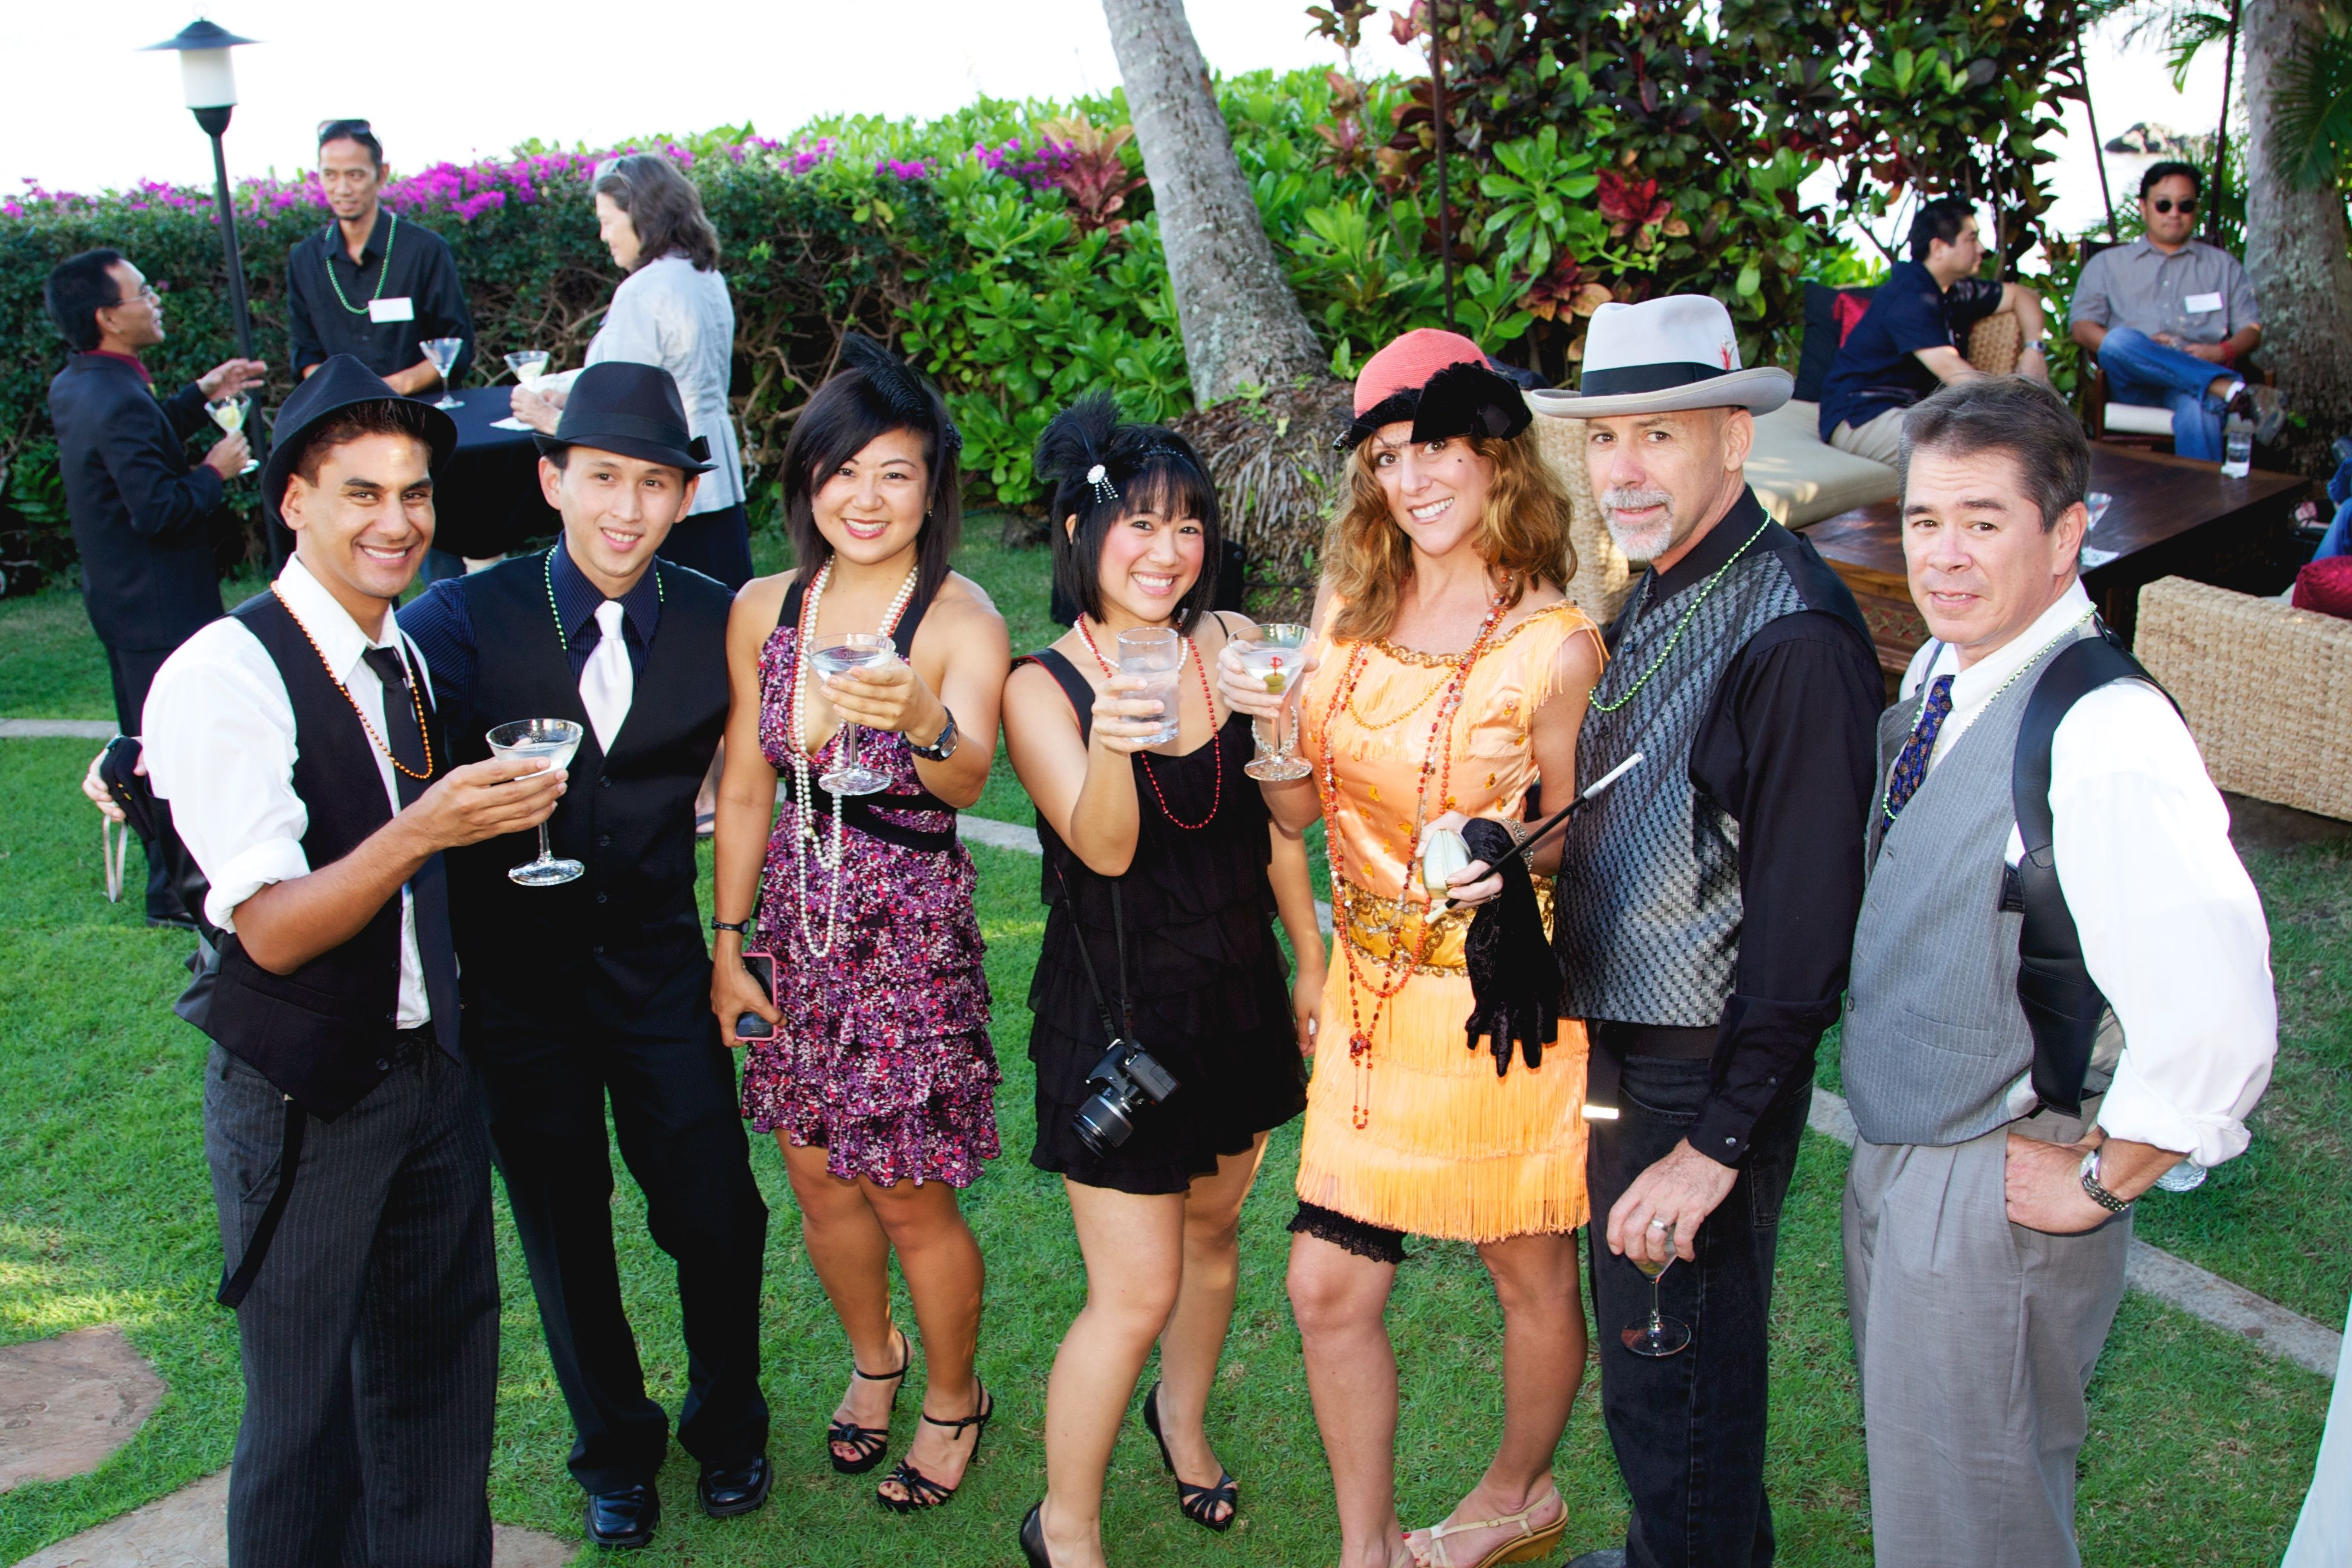 The Great Gatsby dress up party See best of PHOTOS of